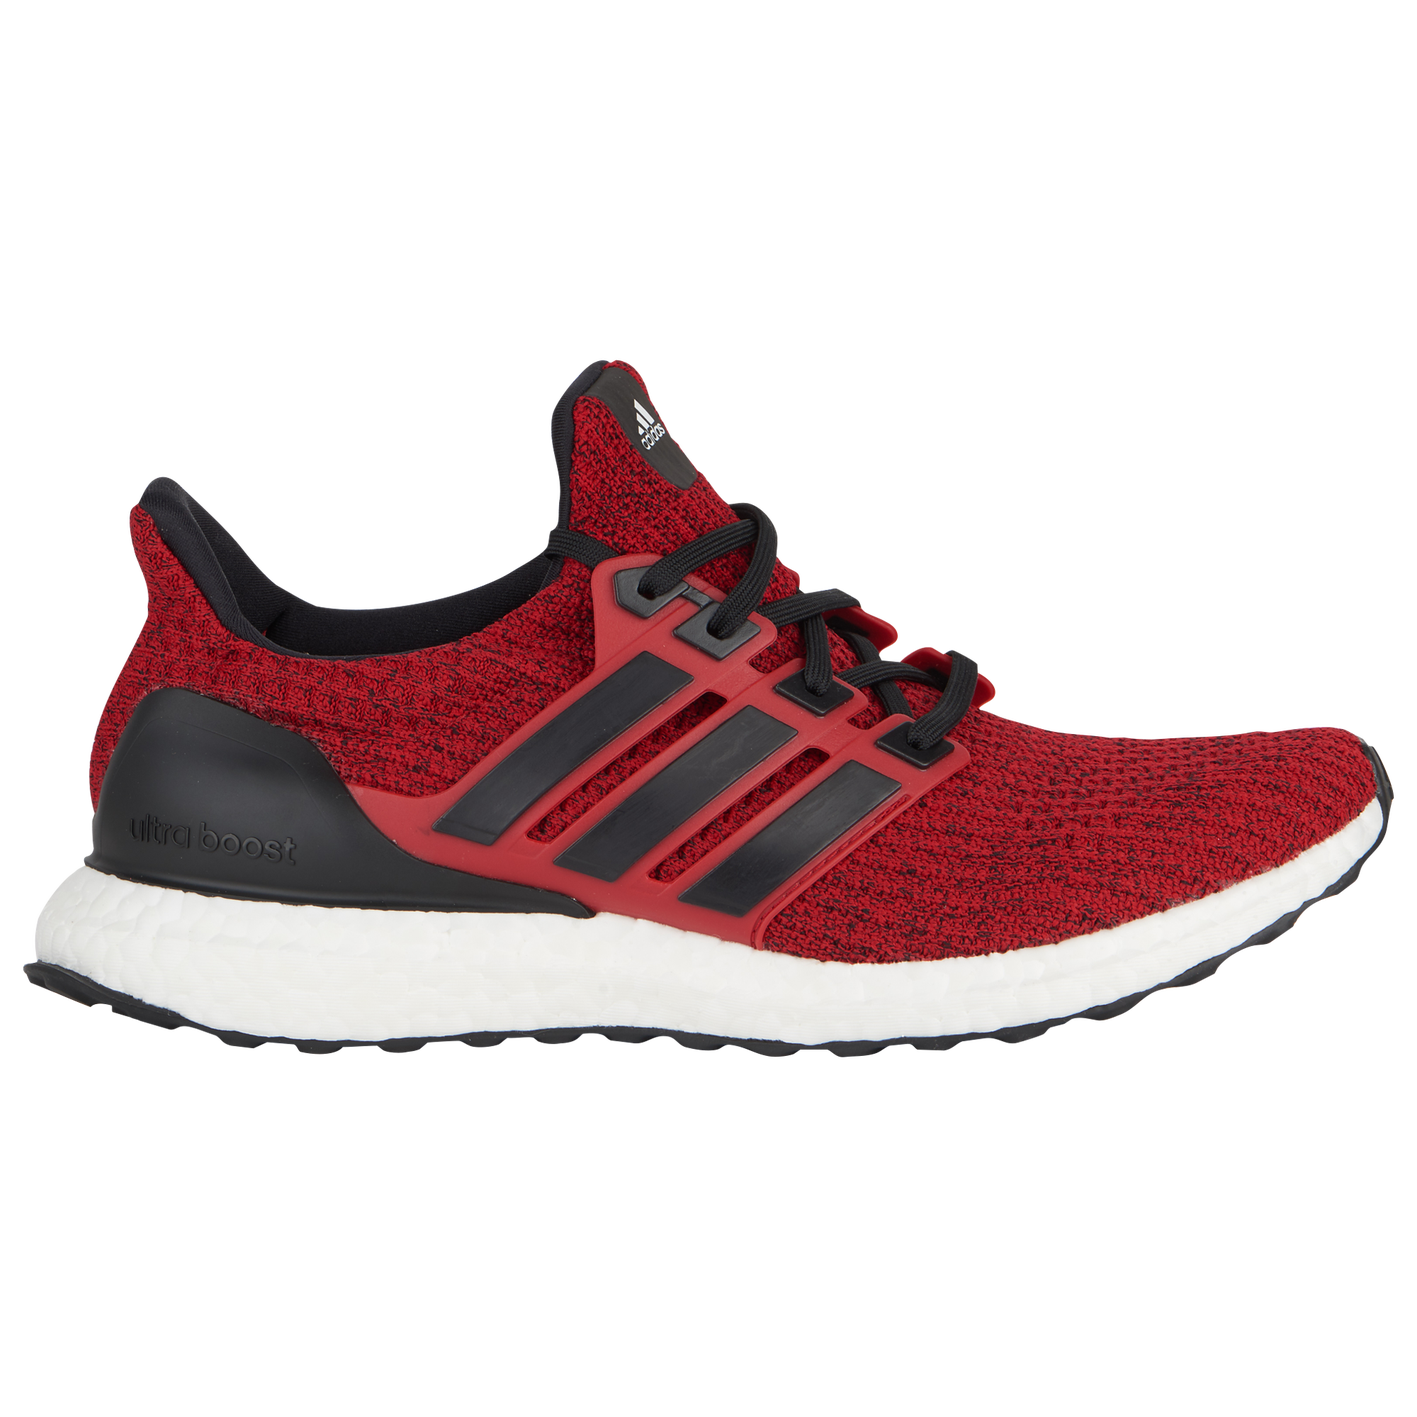 new arrival 7c13e d3278 adidas Ultra Boost - Mens